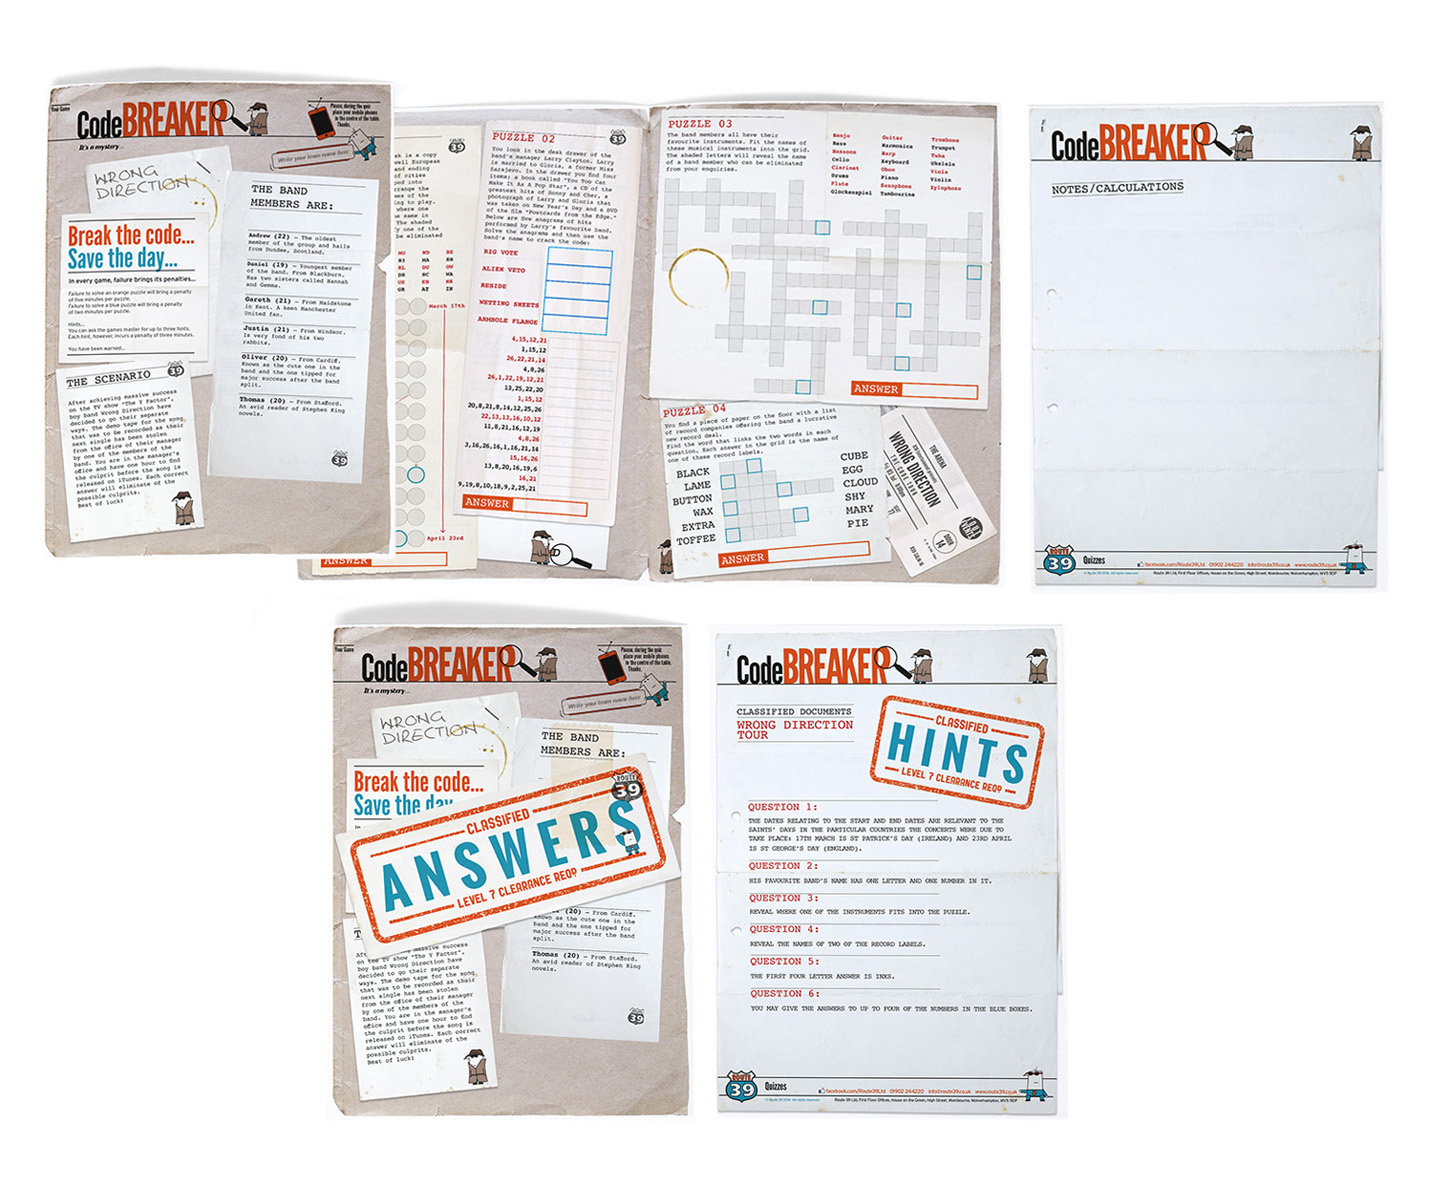 http://rusyndesign.co.uk/wp-content/uploads/2021/02/Route-39-Codebreaker-Game-and-answer-sheets.jpg